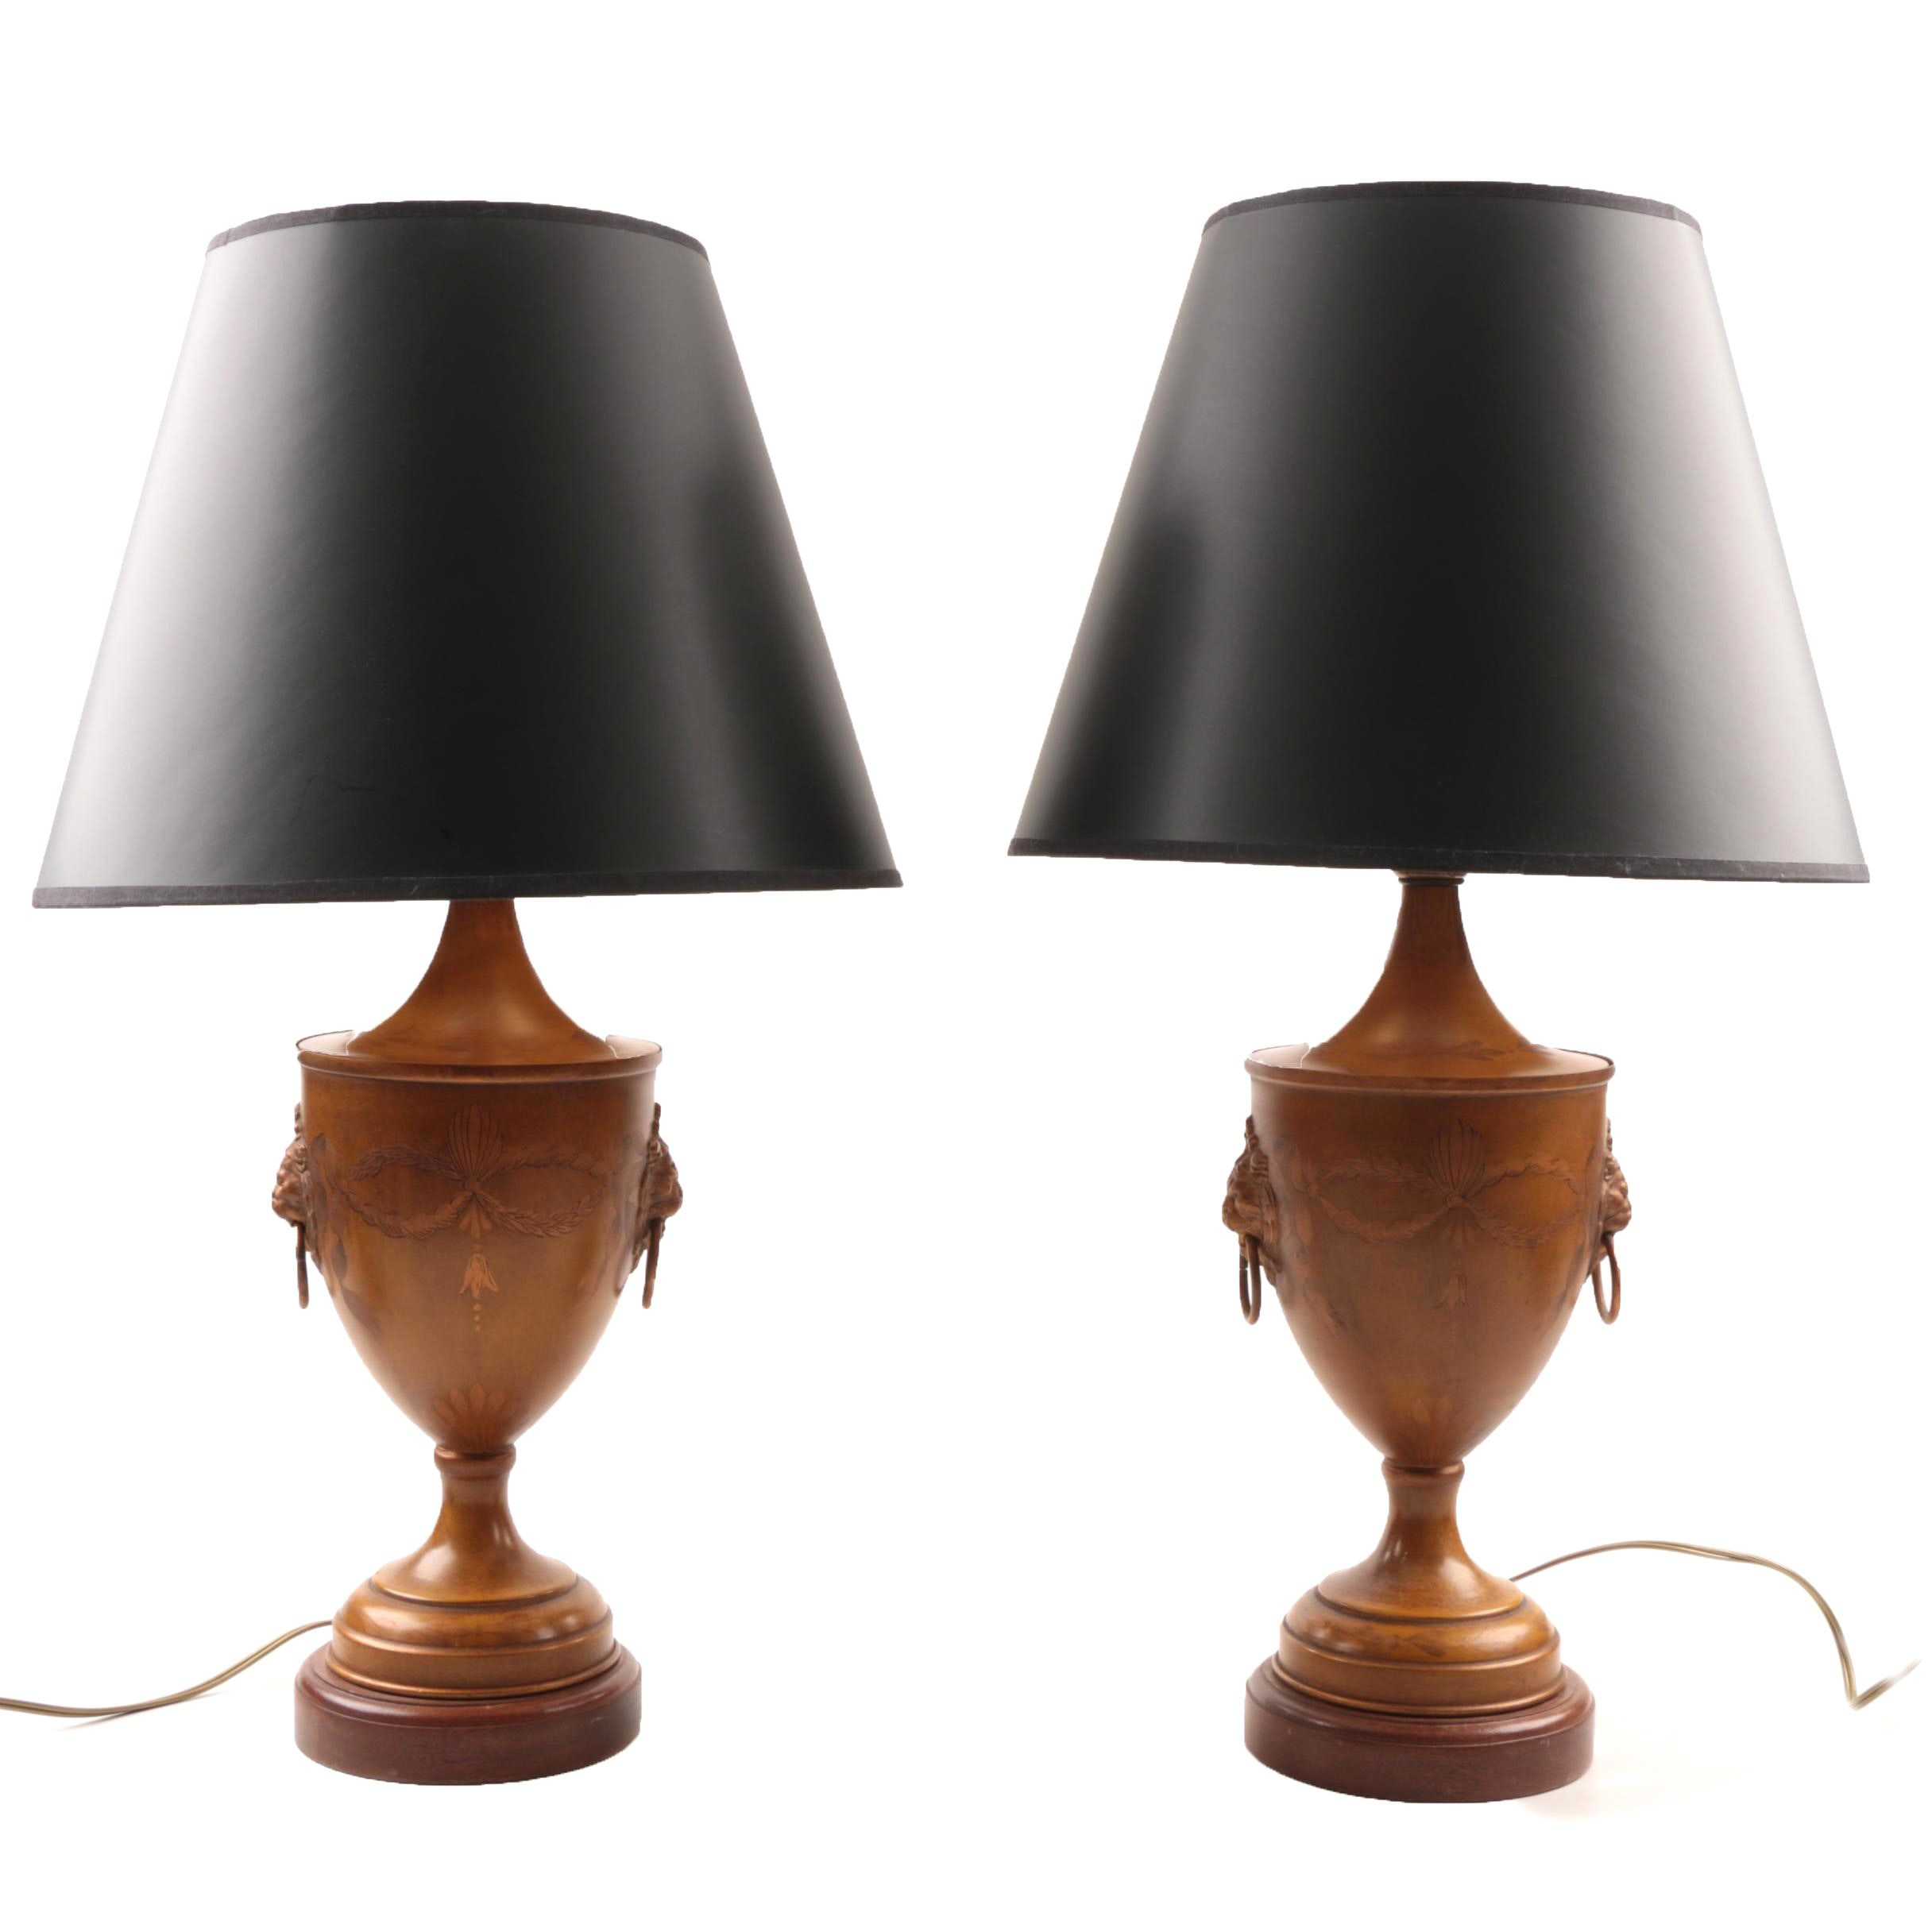 Painted Classical Metal Urn Form Lamps With Black Shades